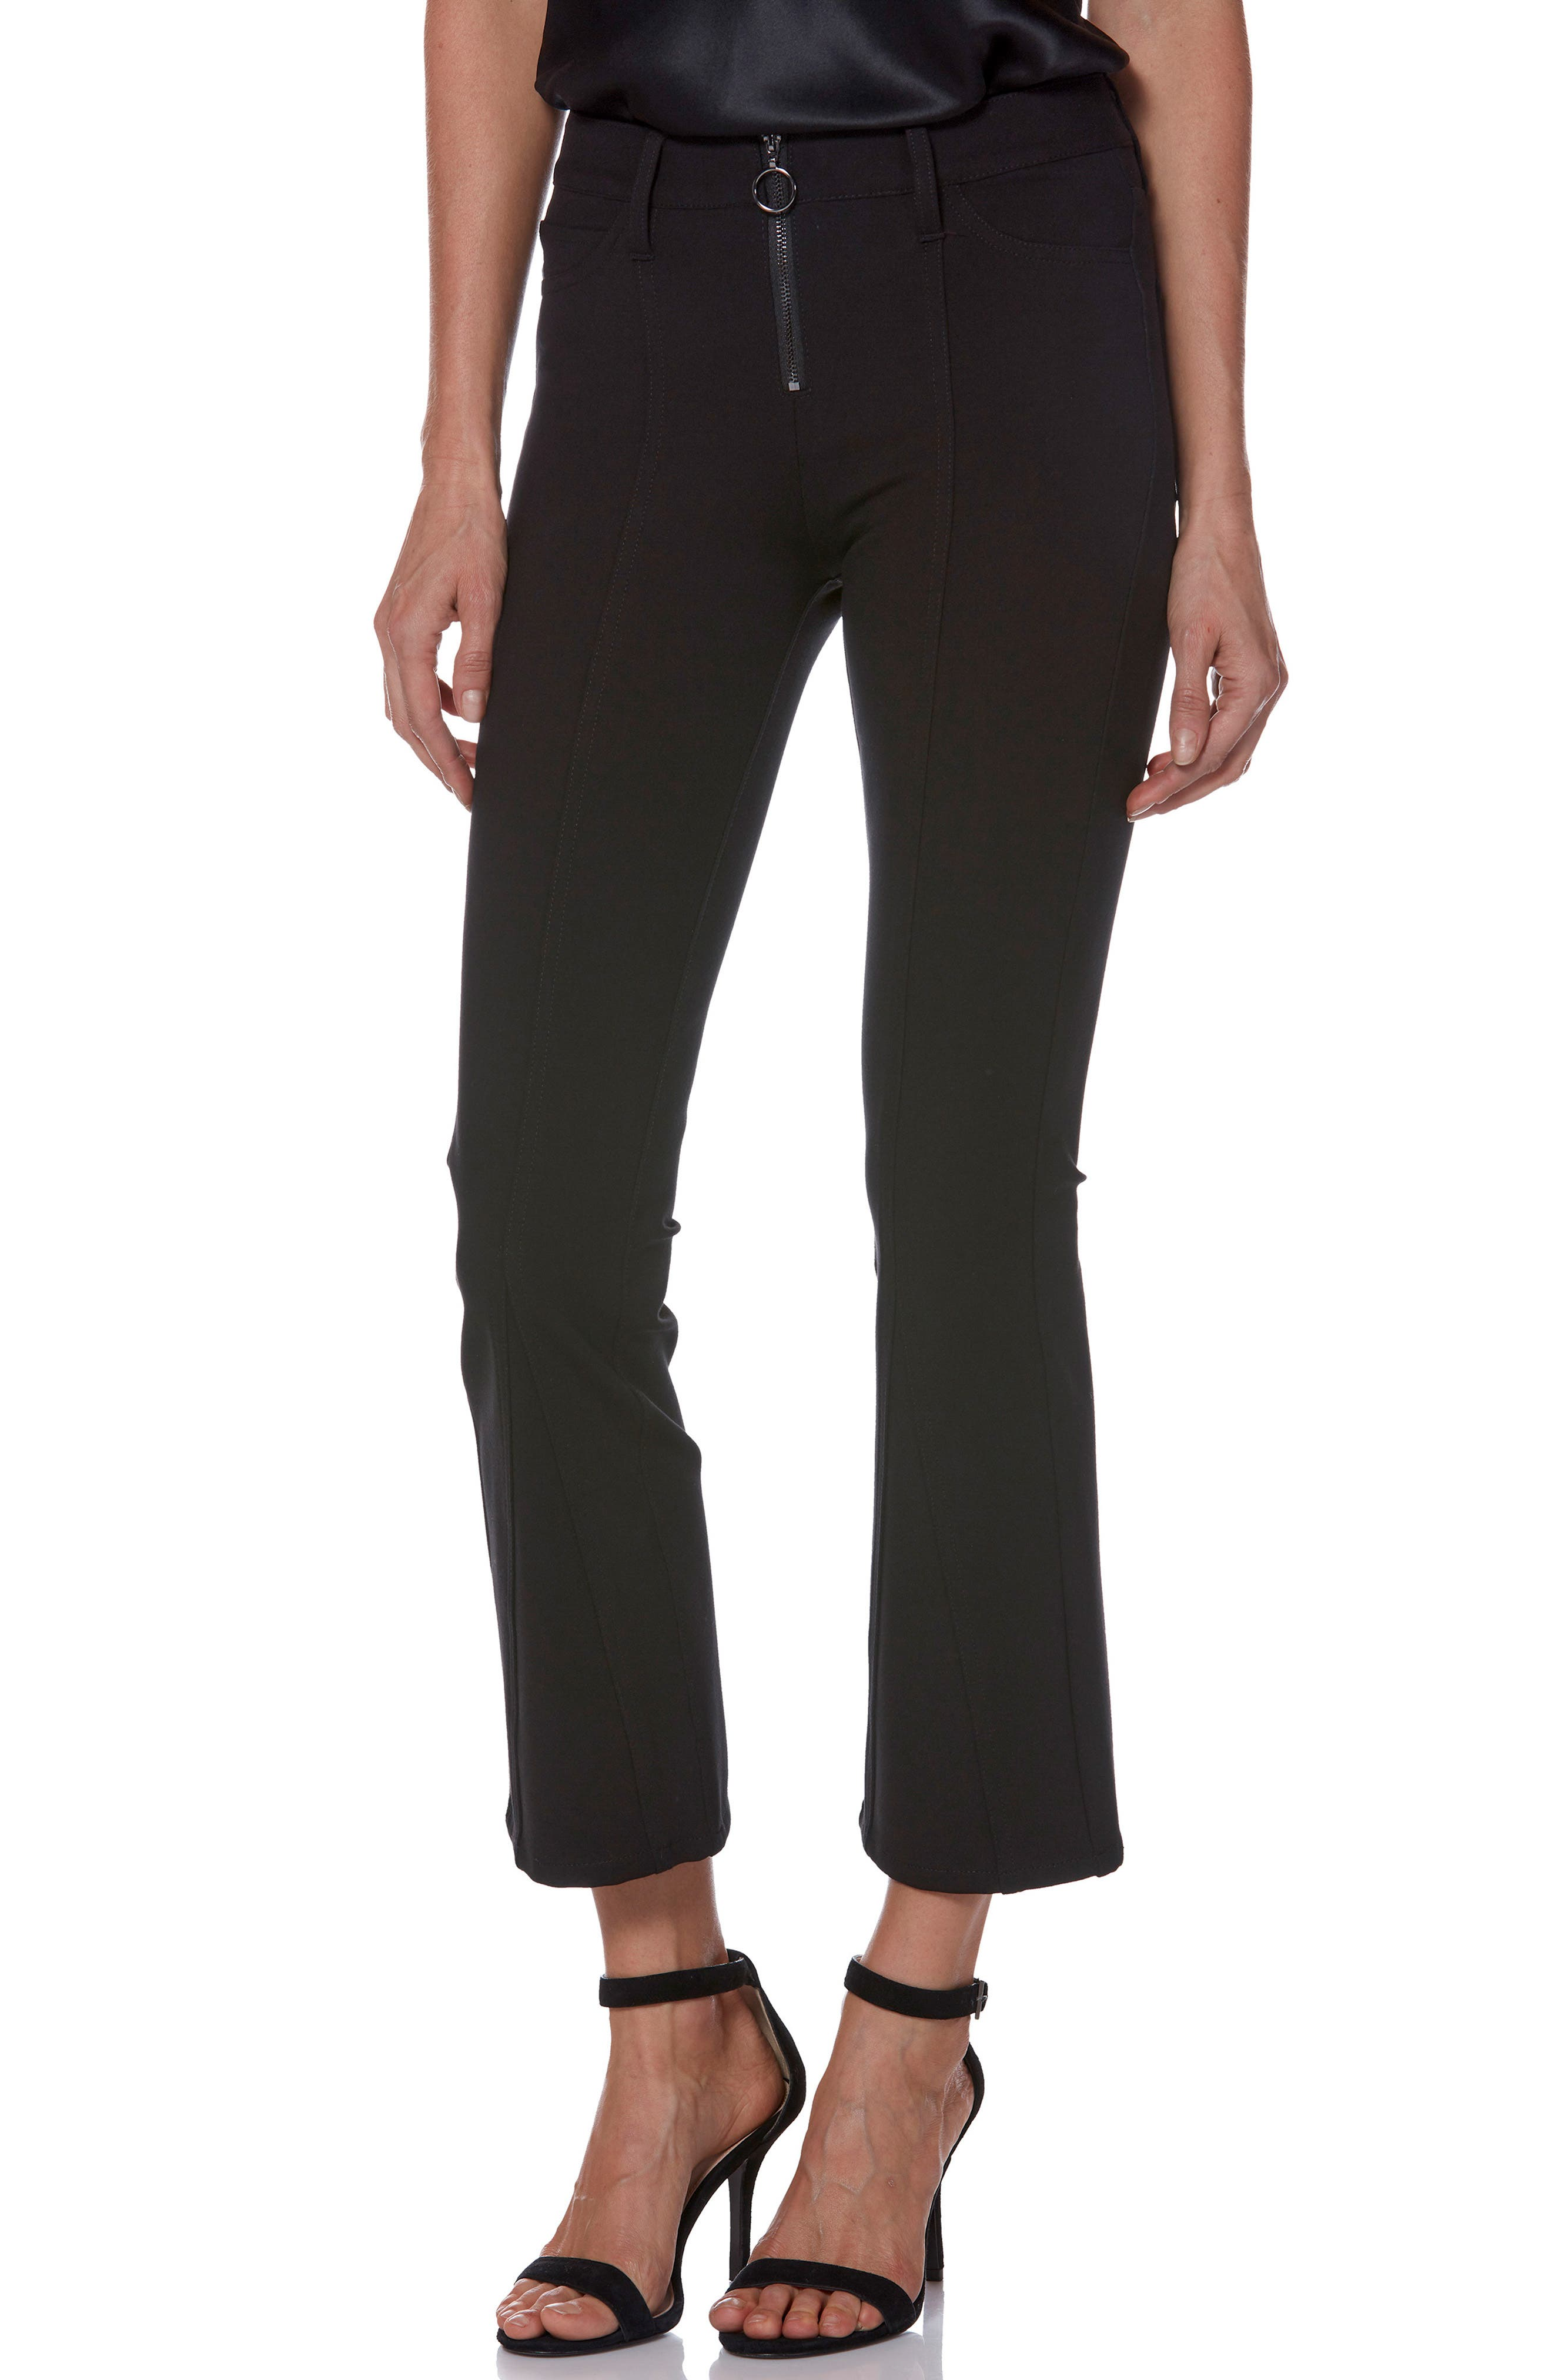 Paige Colette Zip High Waist Crop Flare Ponte Pants, 3 - Black